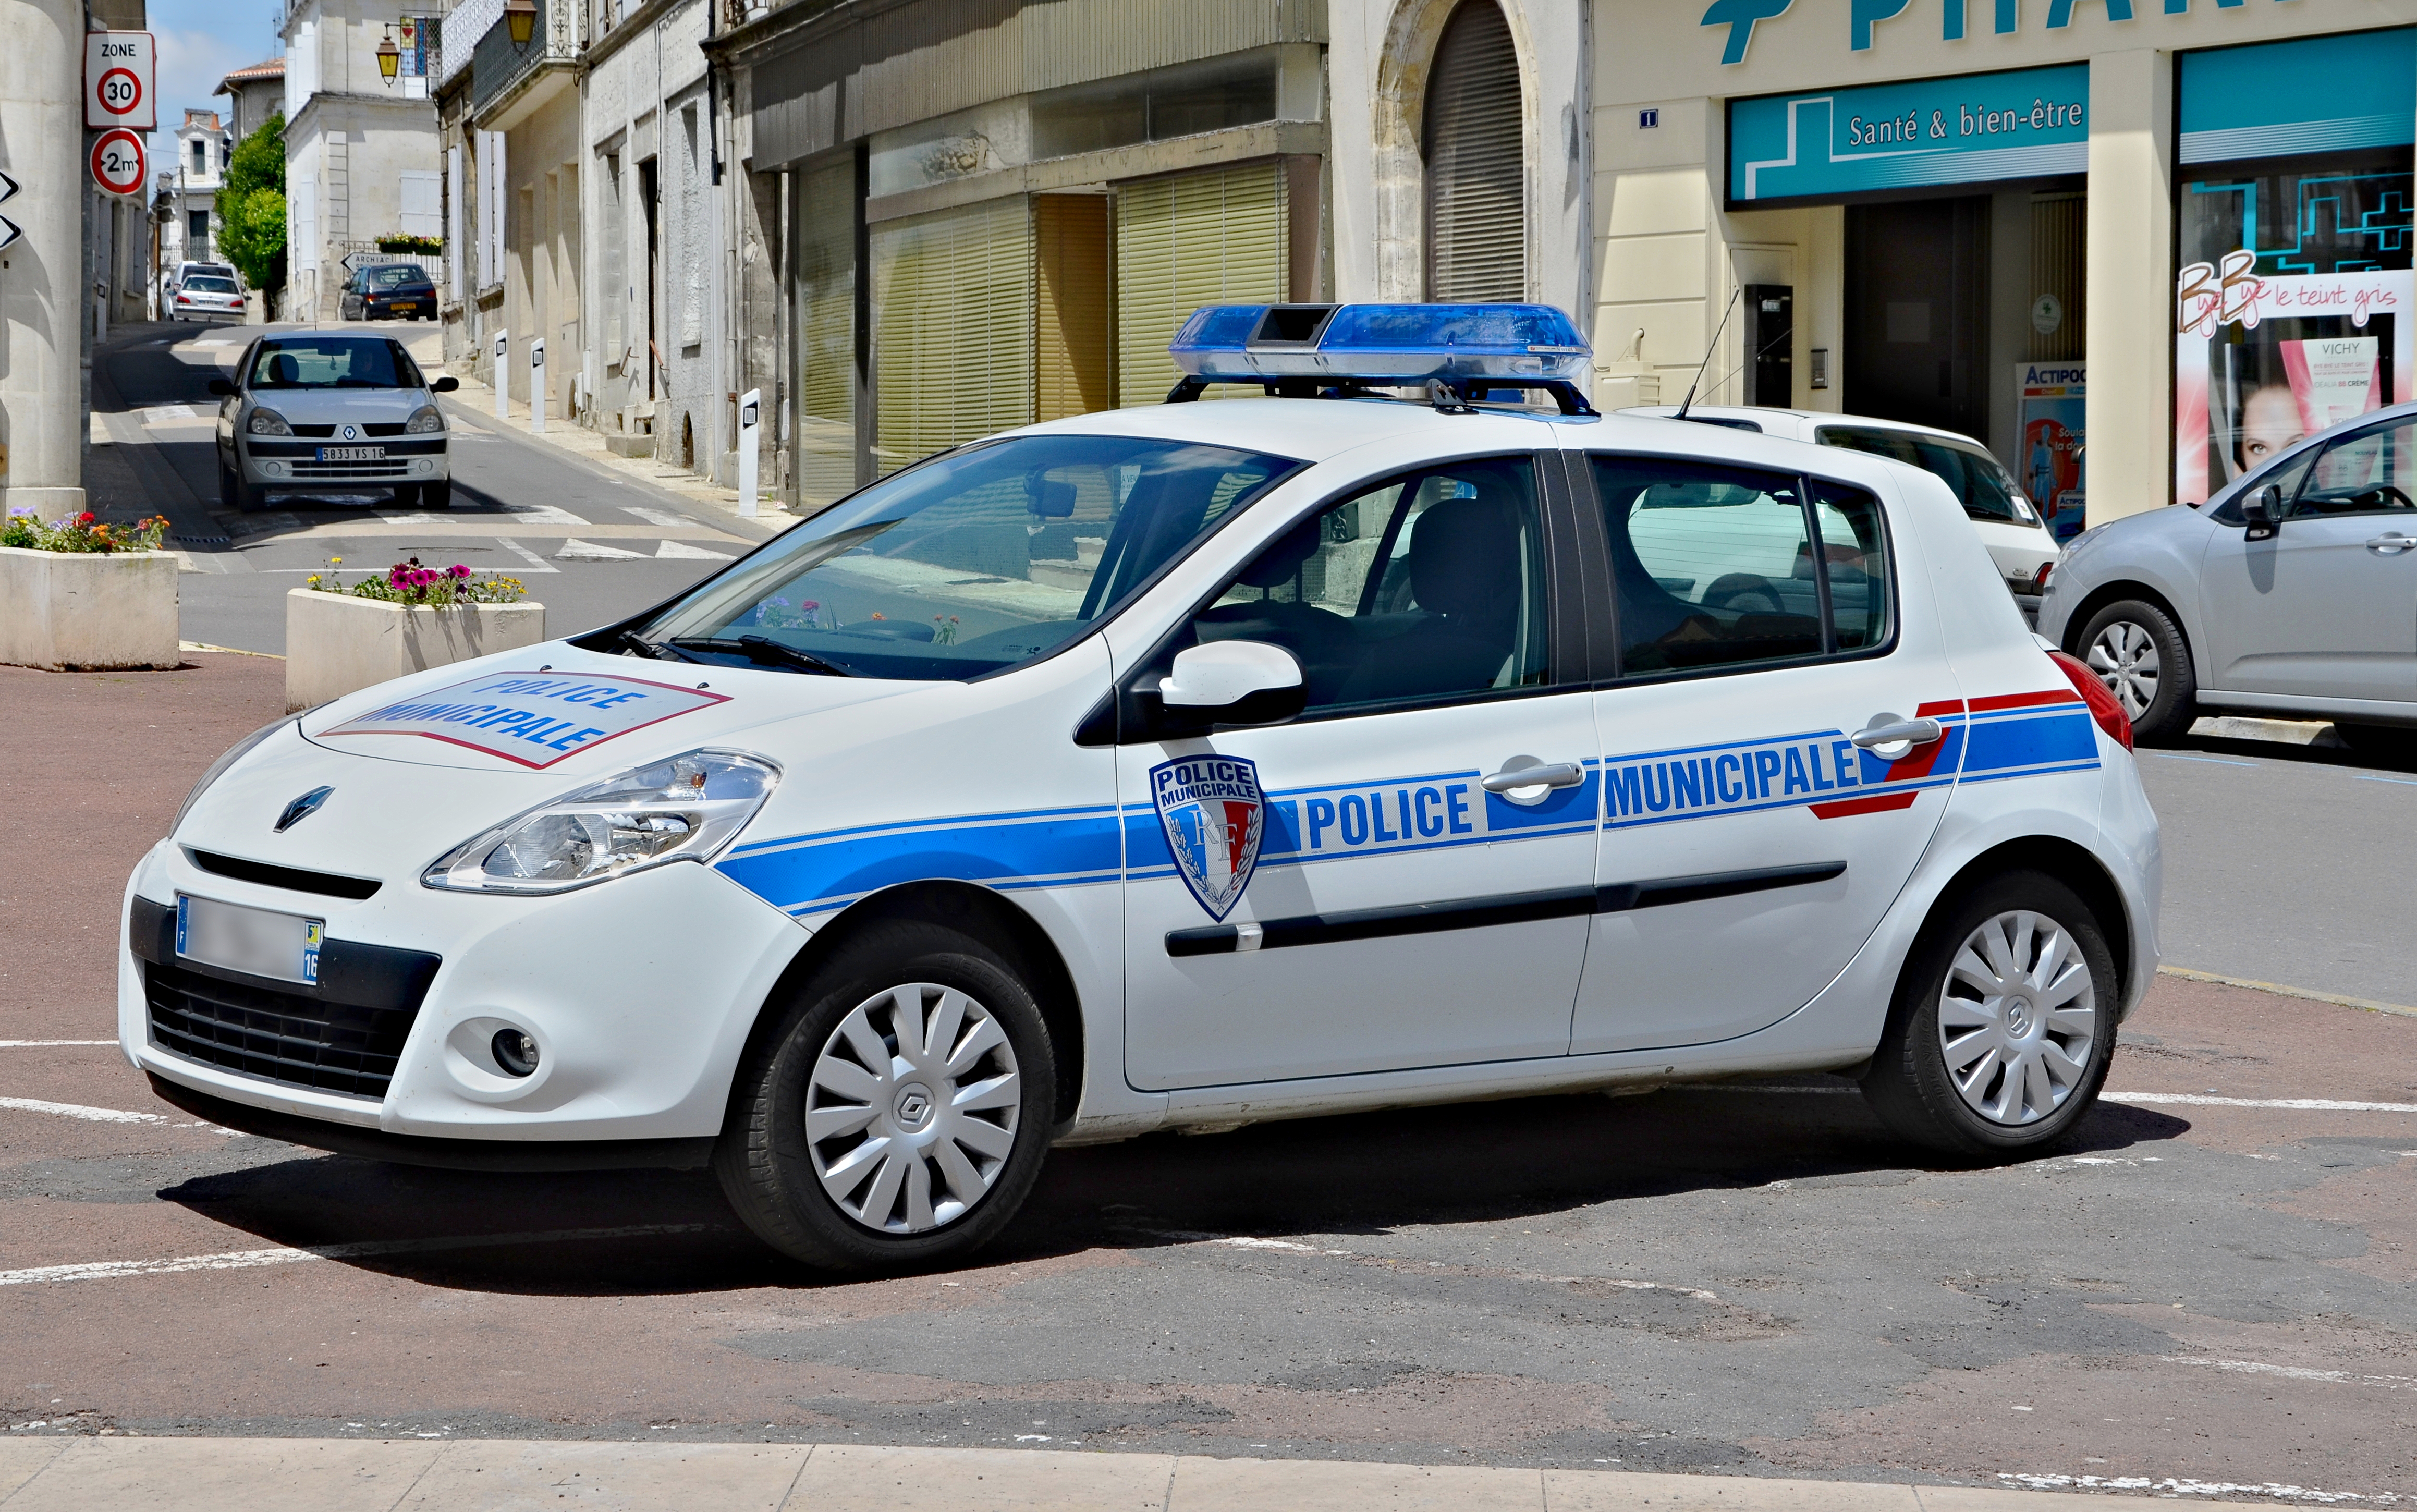 file chateauneuf 16 clio police mun wikimedia commons. Black Bedroom Furniture Sets. Home Design Ideas